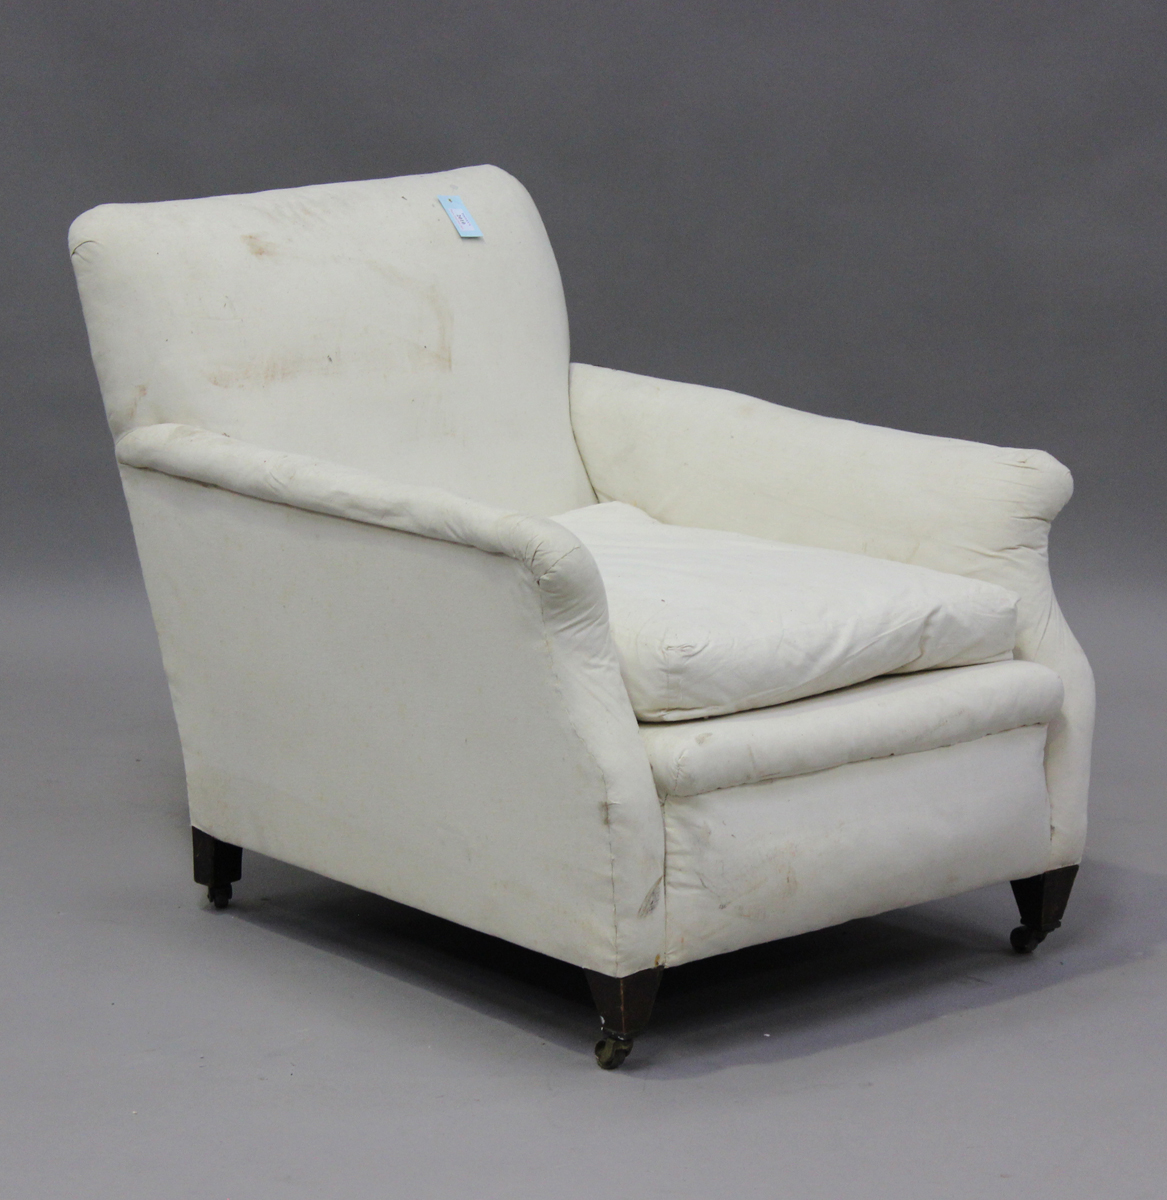 An Edwardian scroll armchair, in the manner of Howard & Sons, raised on square tapering legs, height